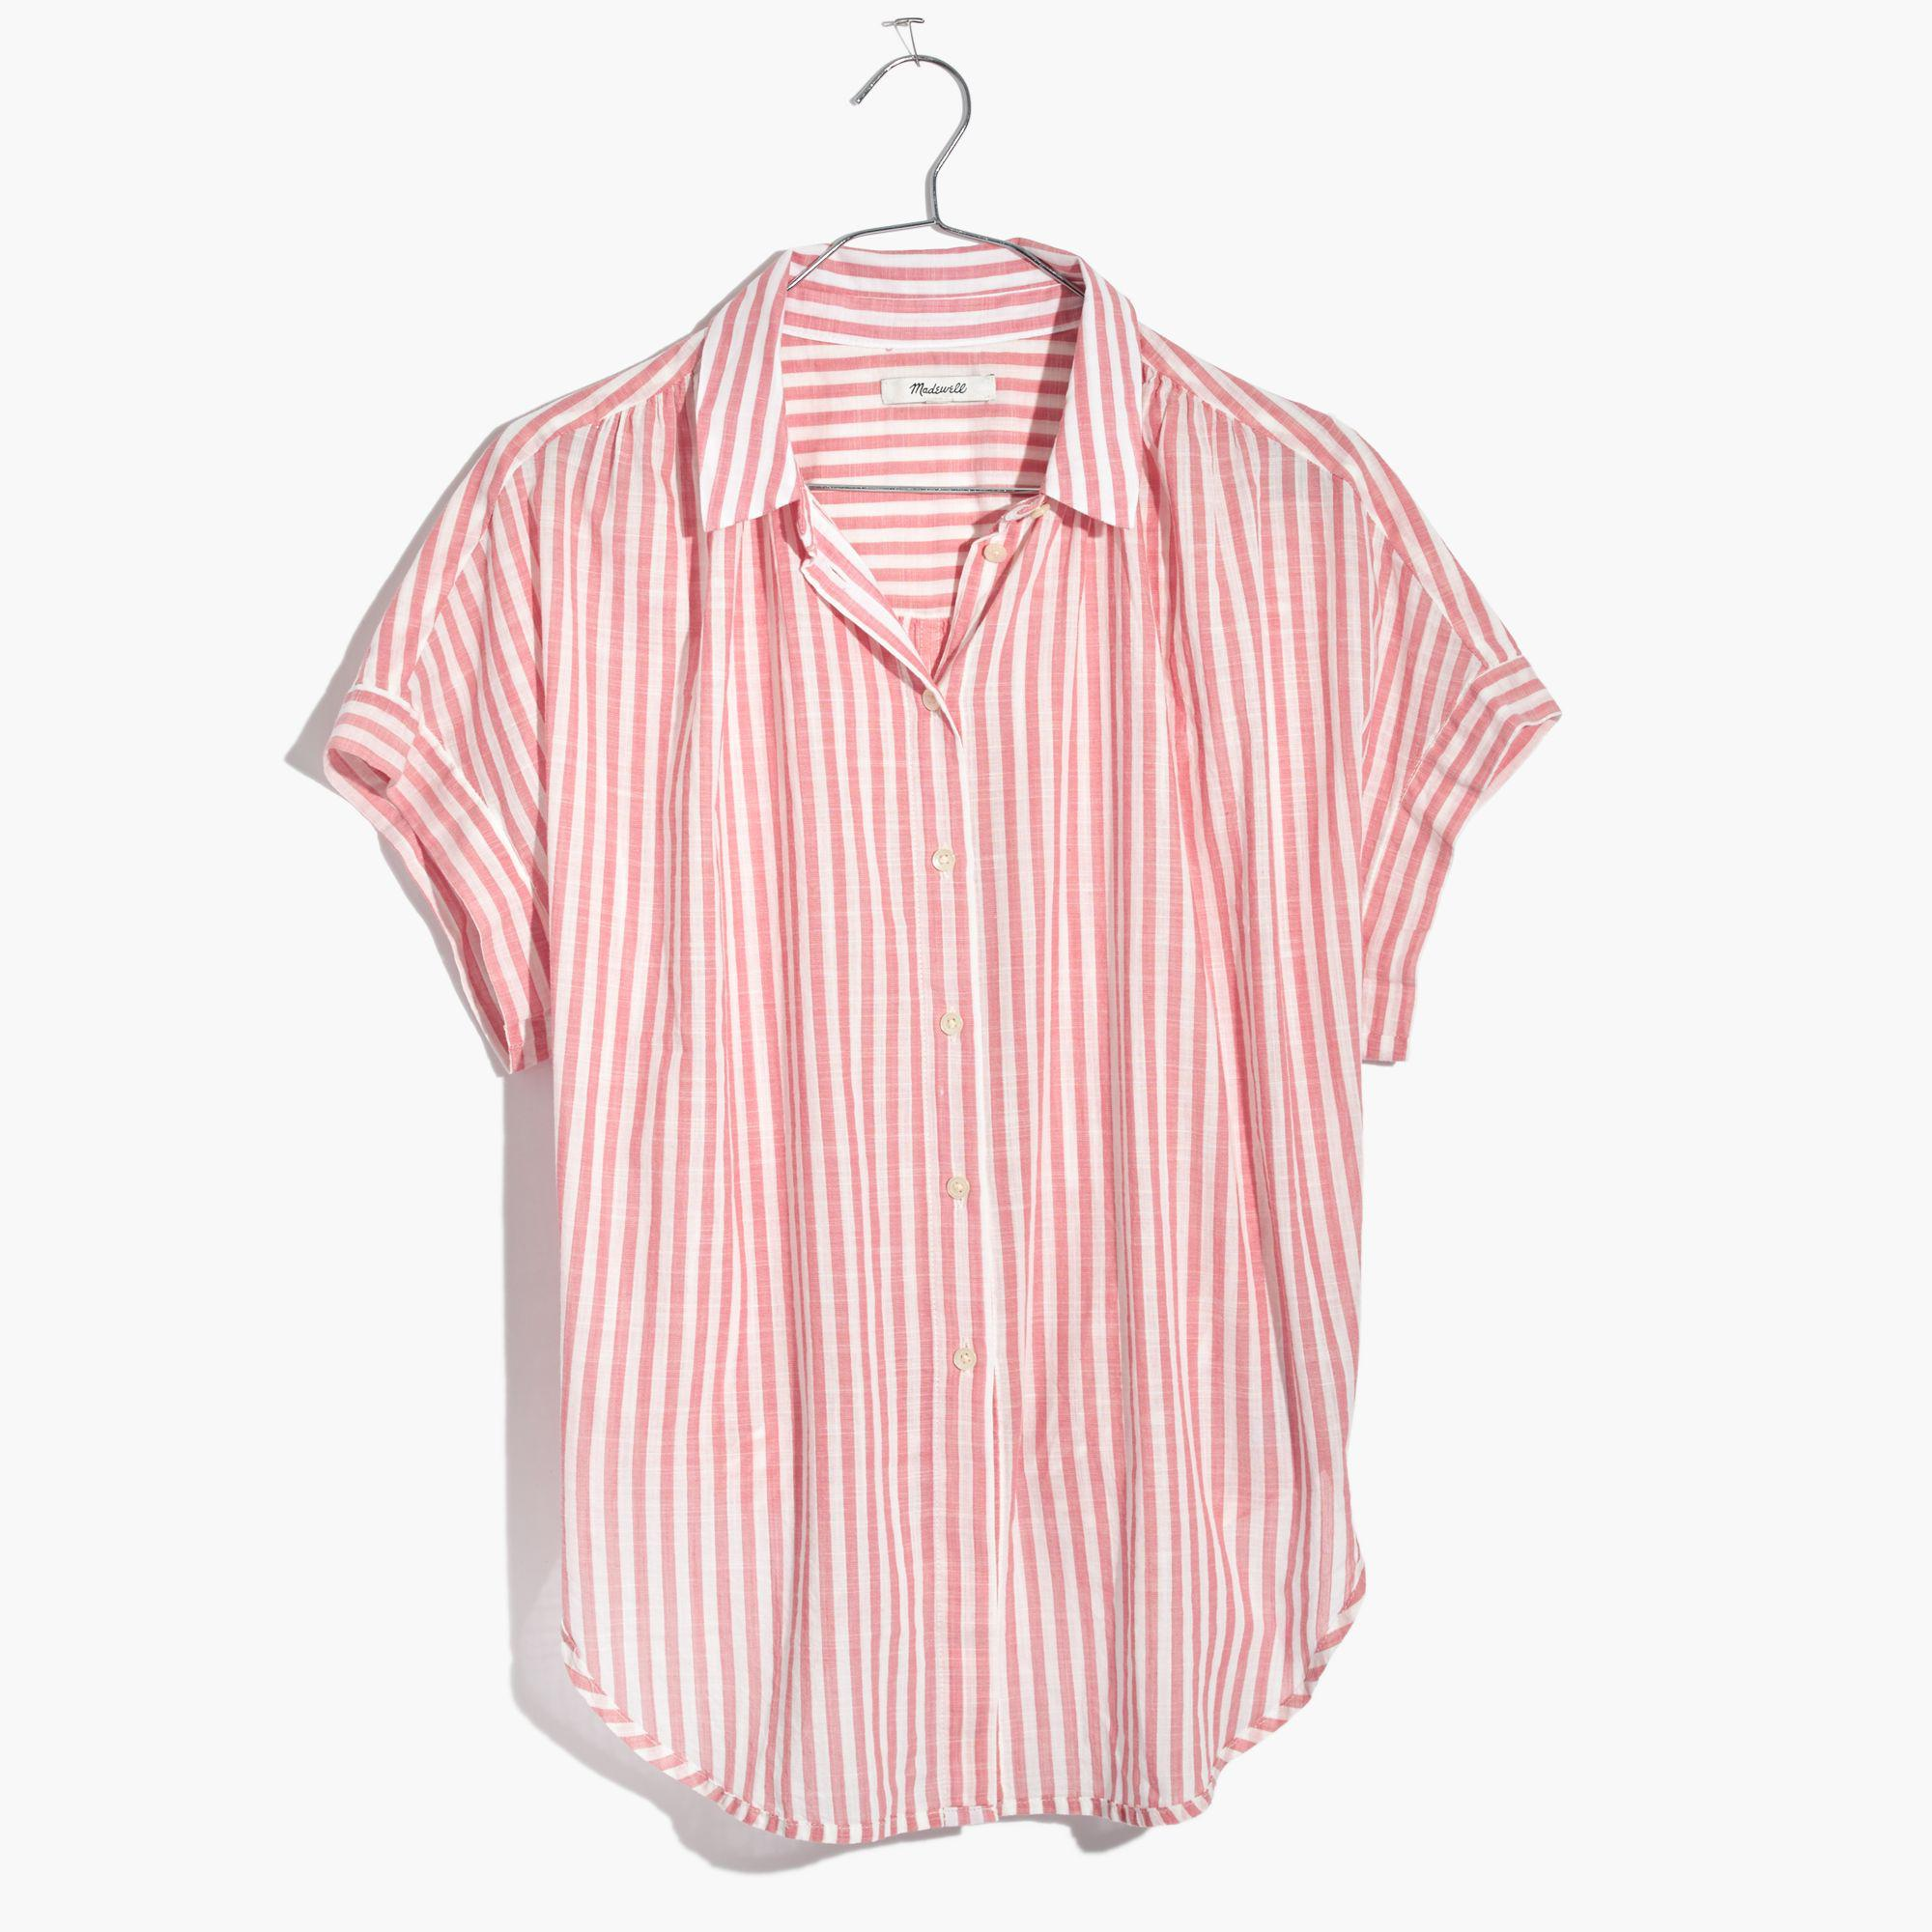 e3532727033 Madewell Central Tie-back Shirt In Rose Stripe - Lyst